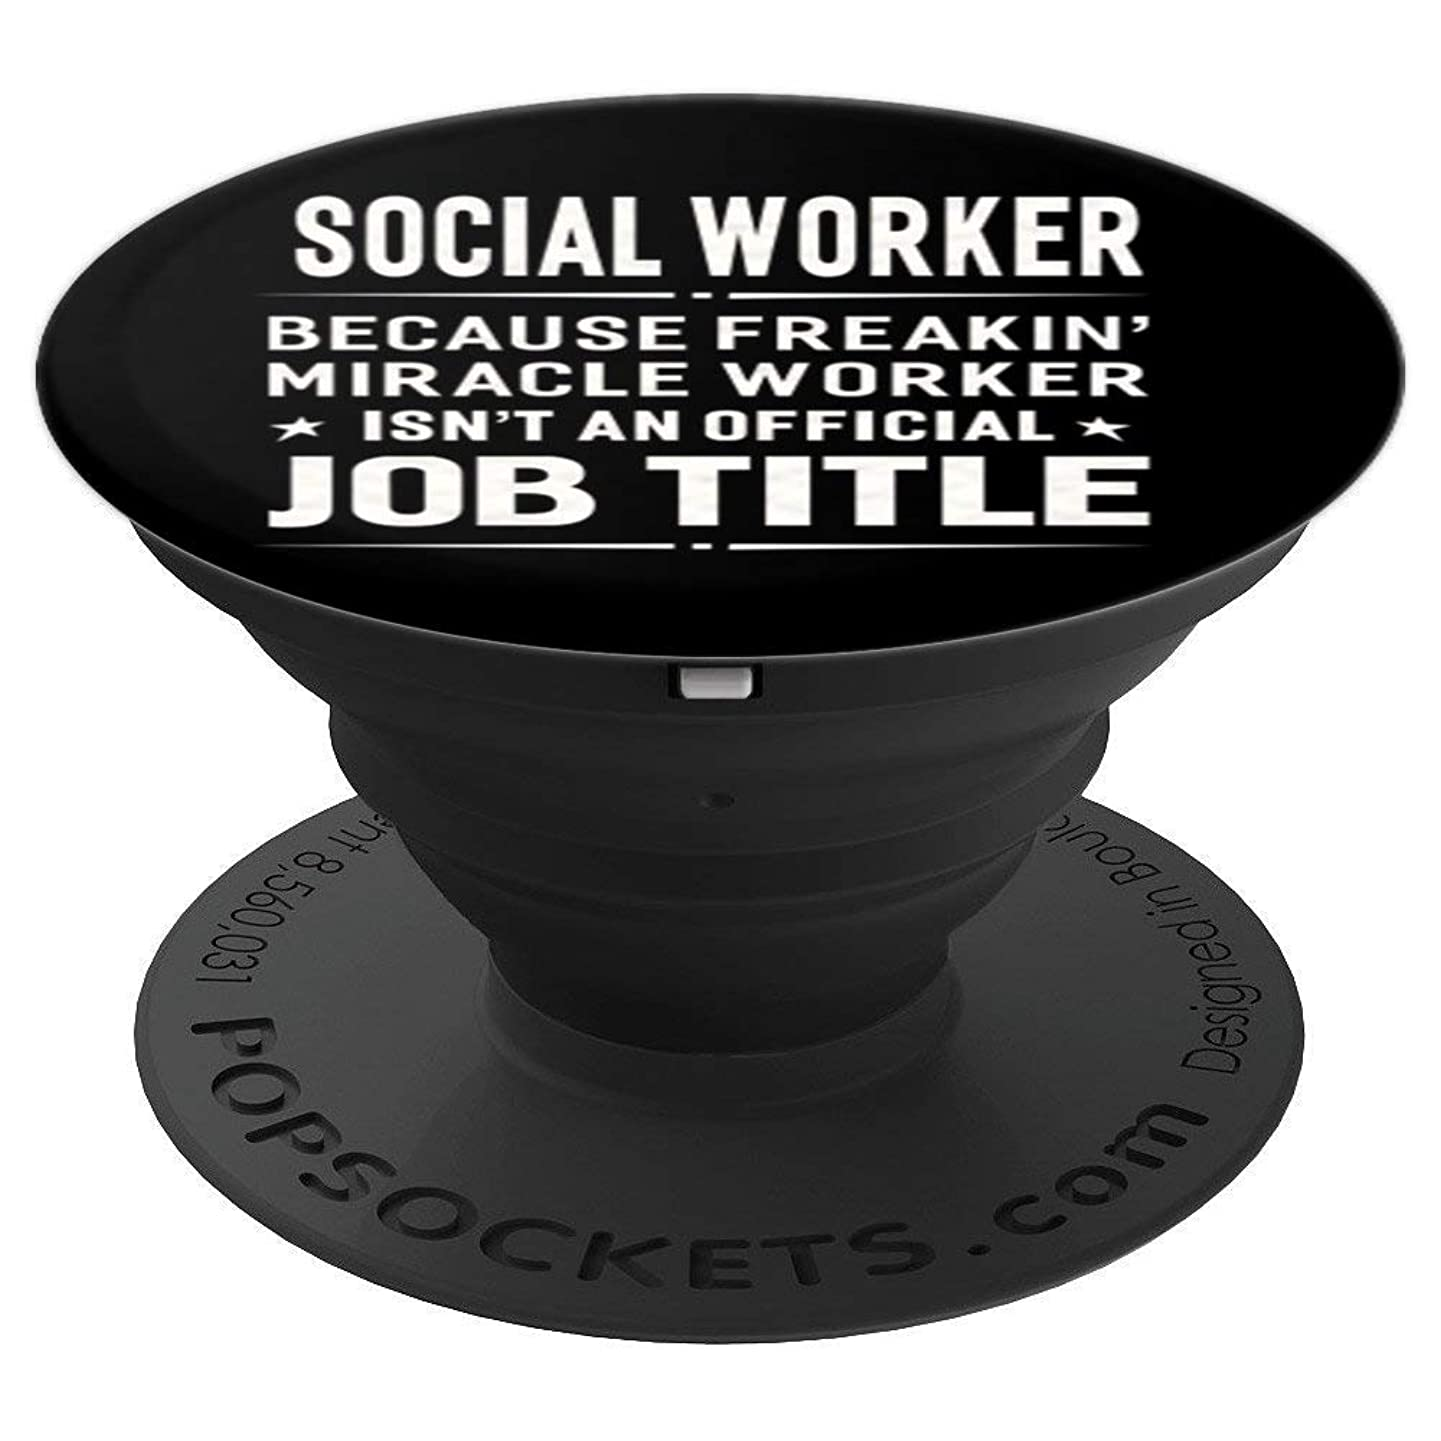 Social Worker Miracle Worker Job Title Profession Pop Socket - PopSockets Grip and Stand for Phones and Tablets